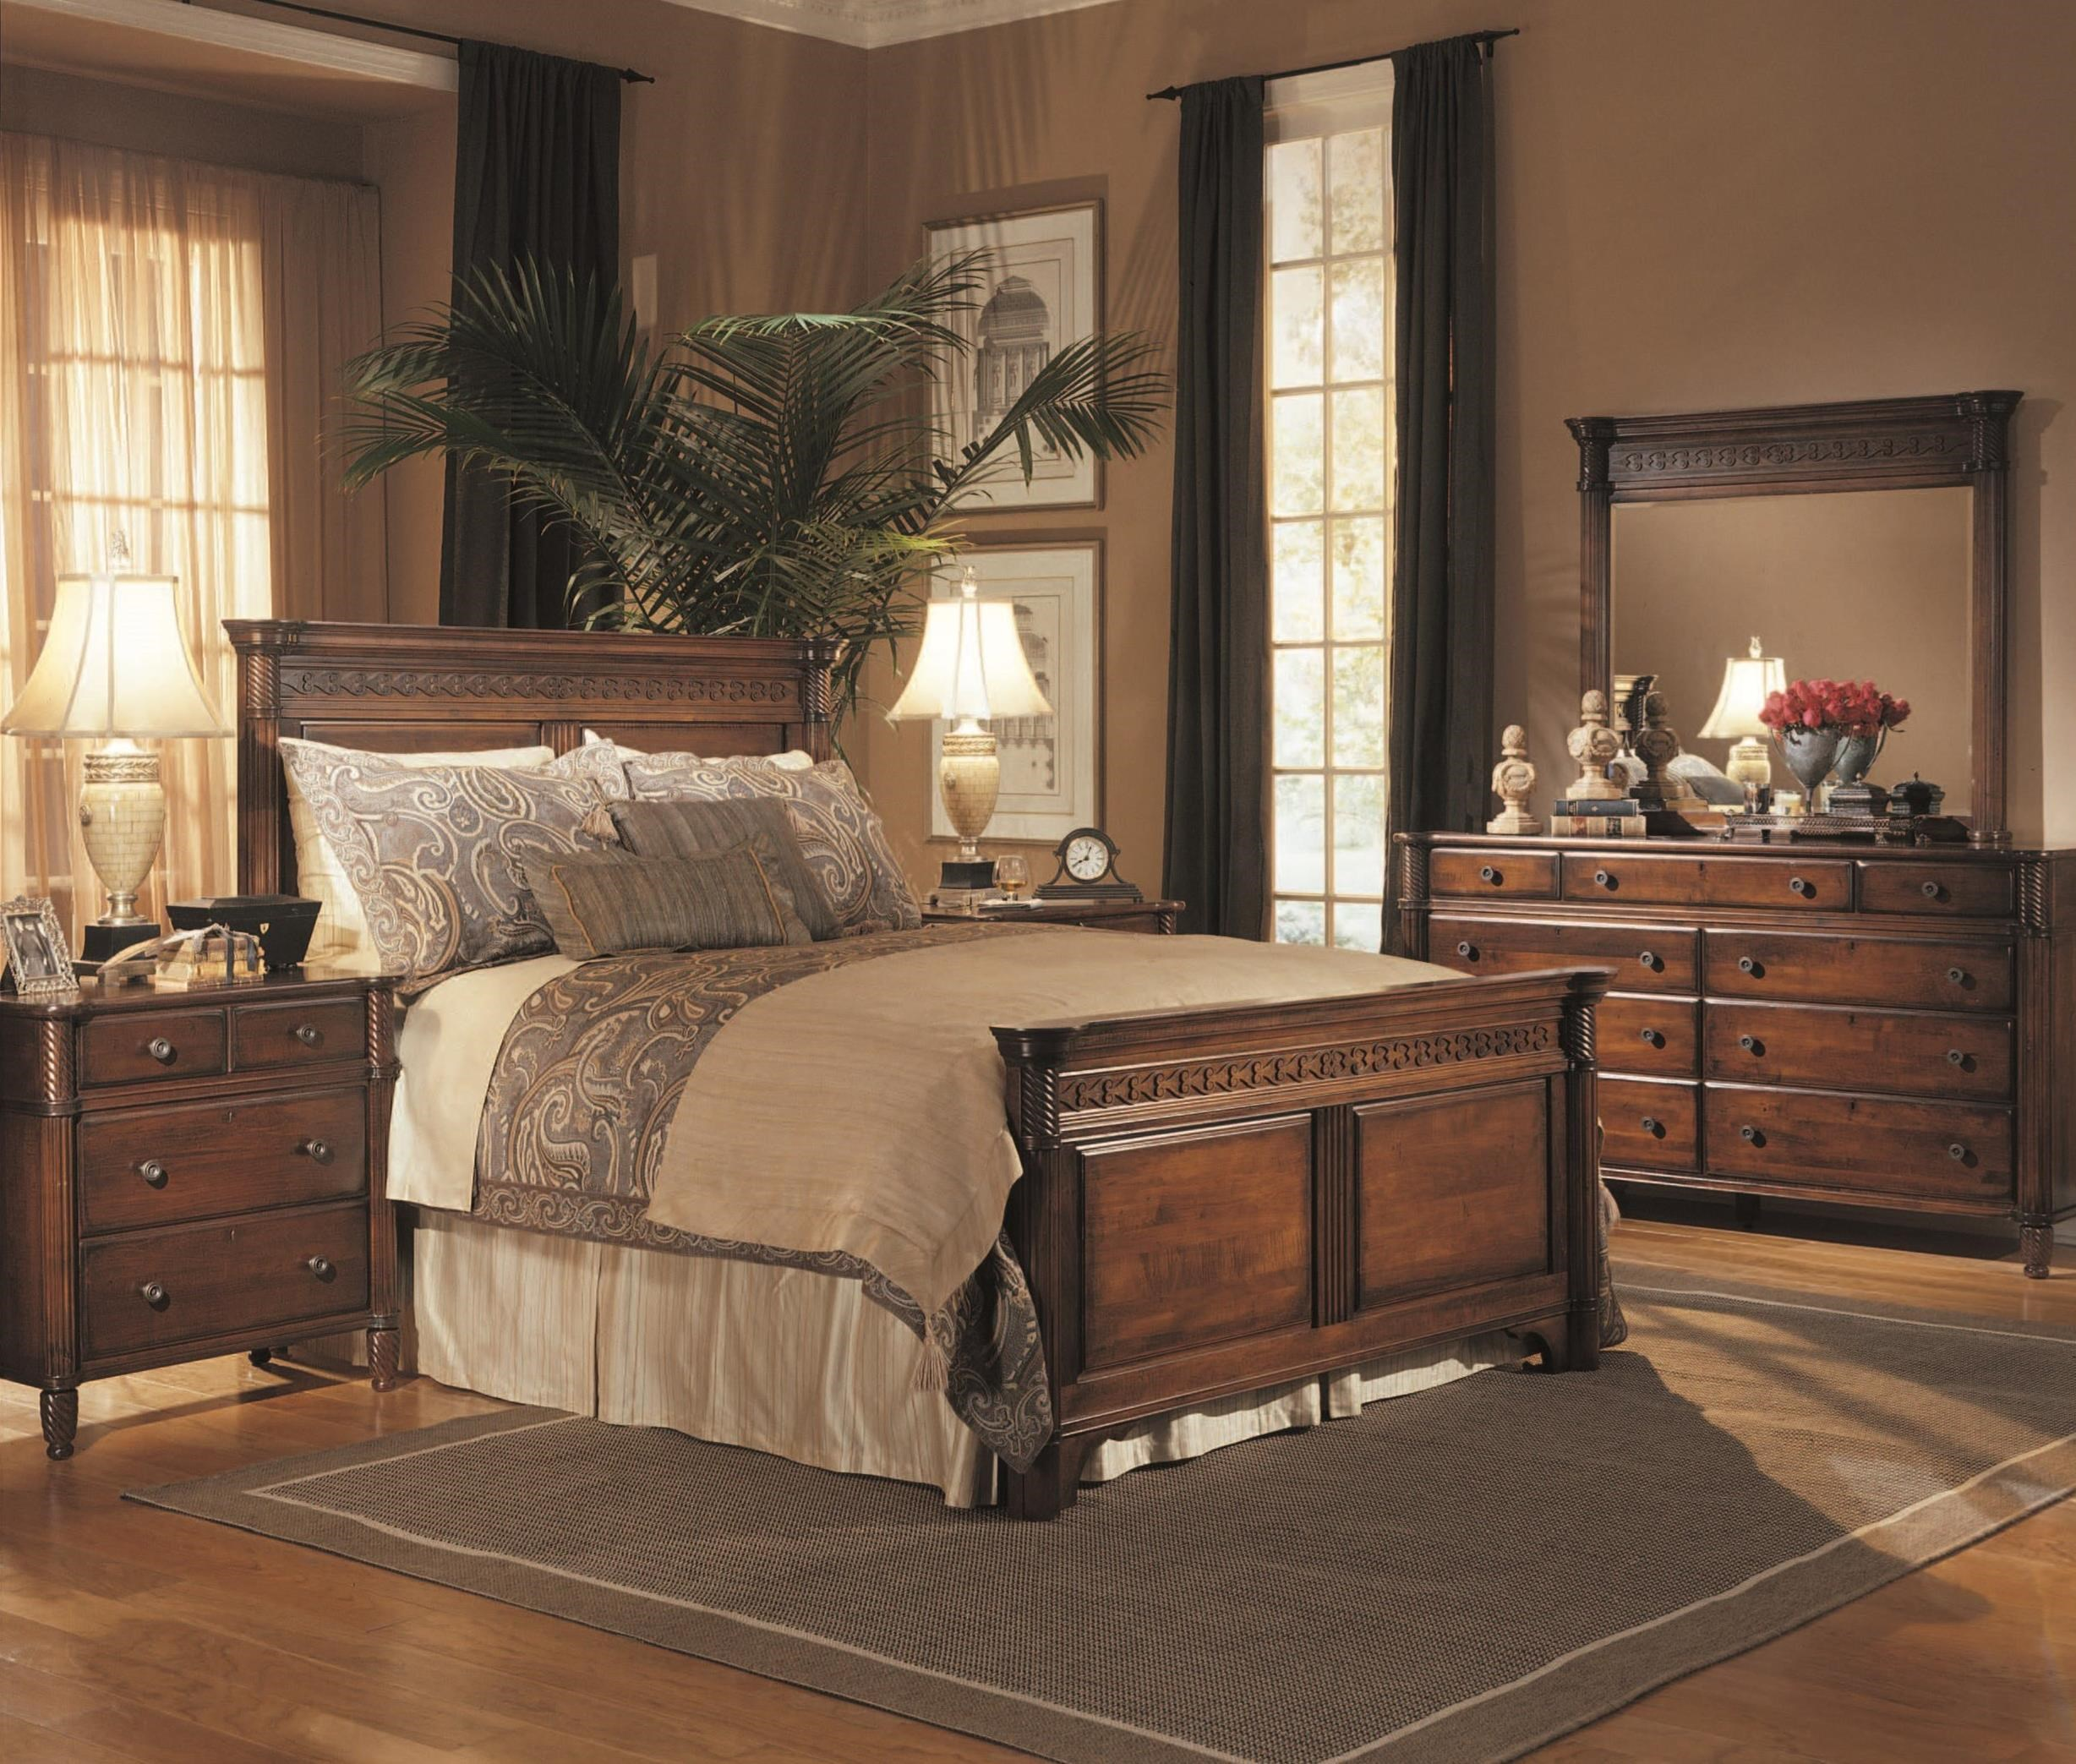 George Washington Architect Queen Bedroom Group by Durham at Stoney Creek Furniture